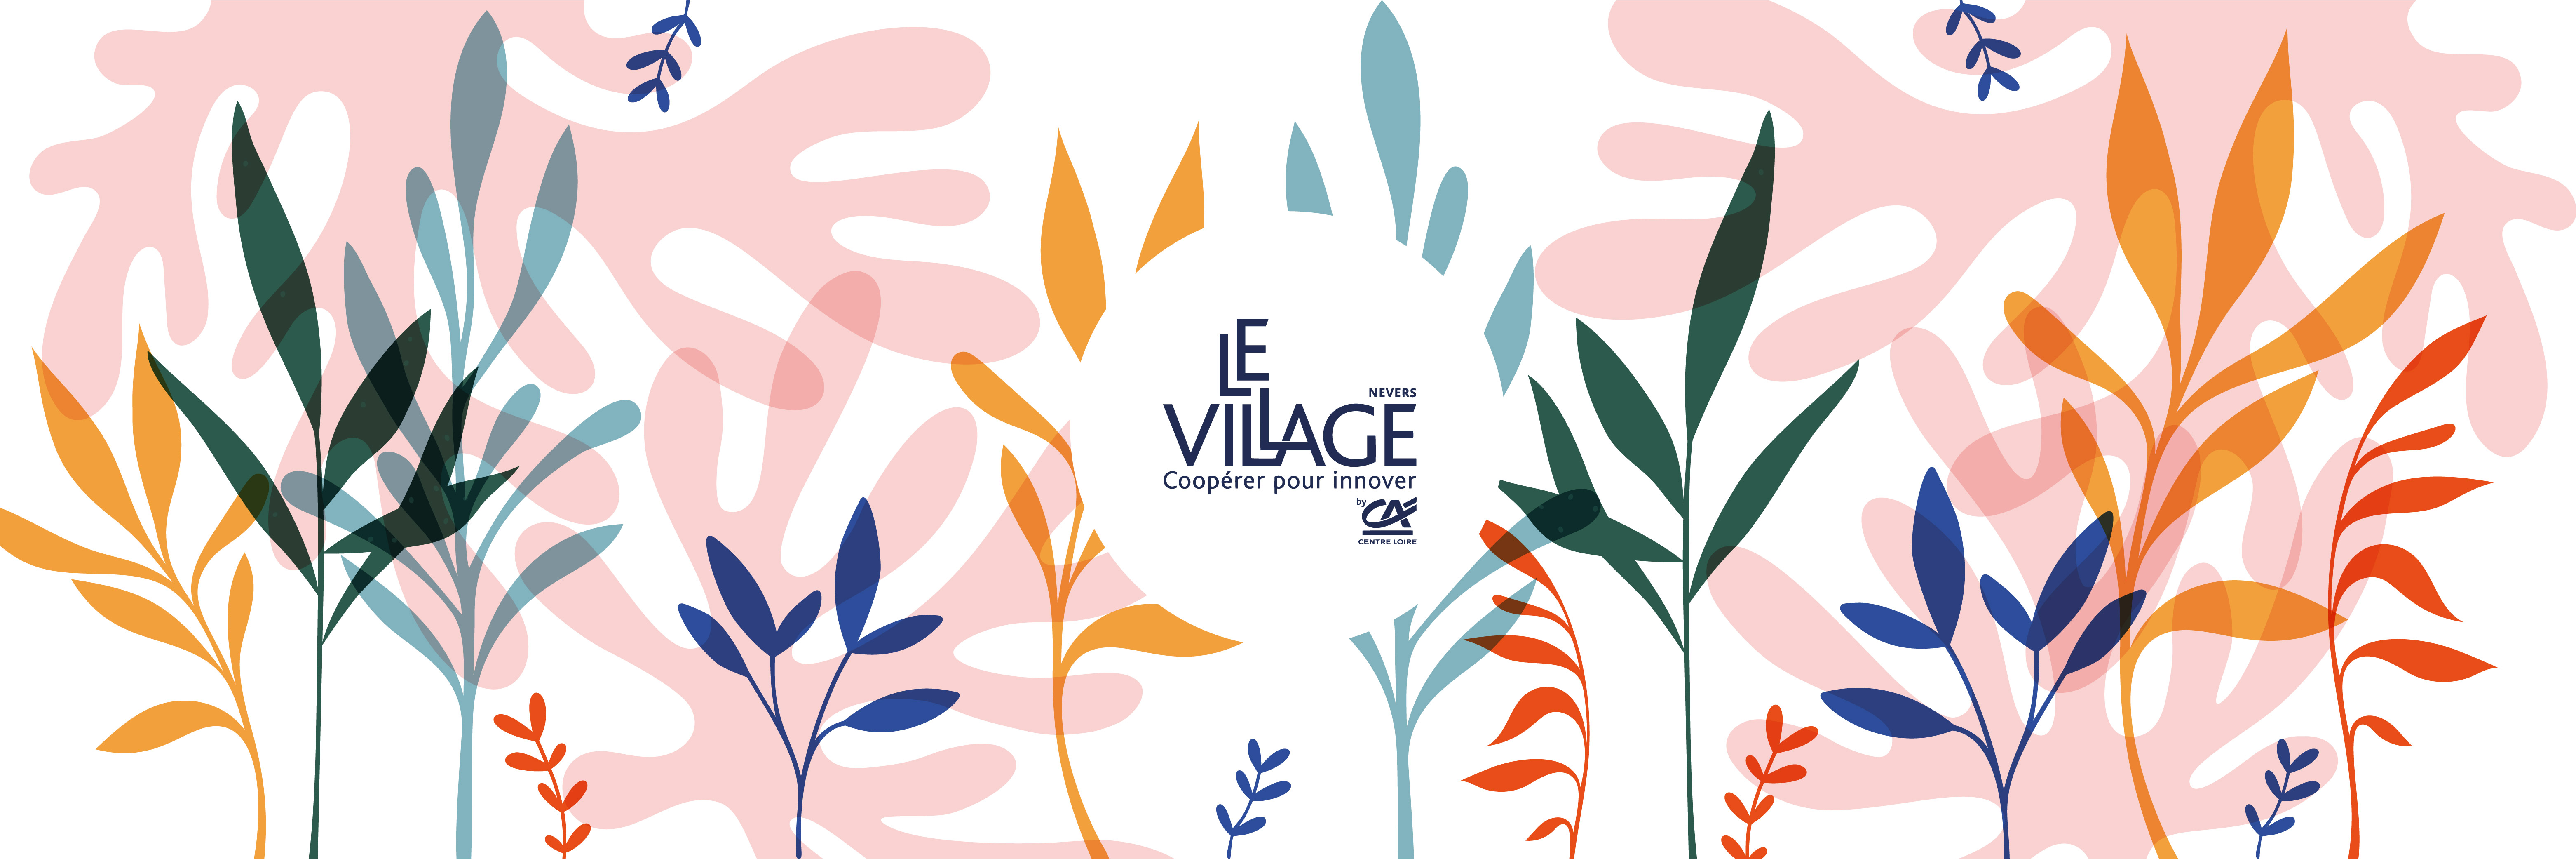 Le Village by CA Nevers